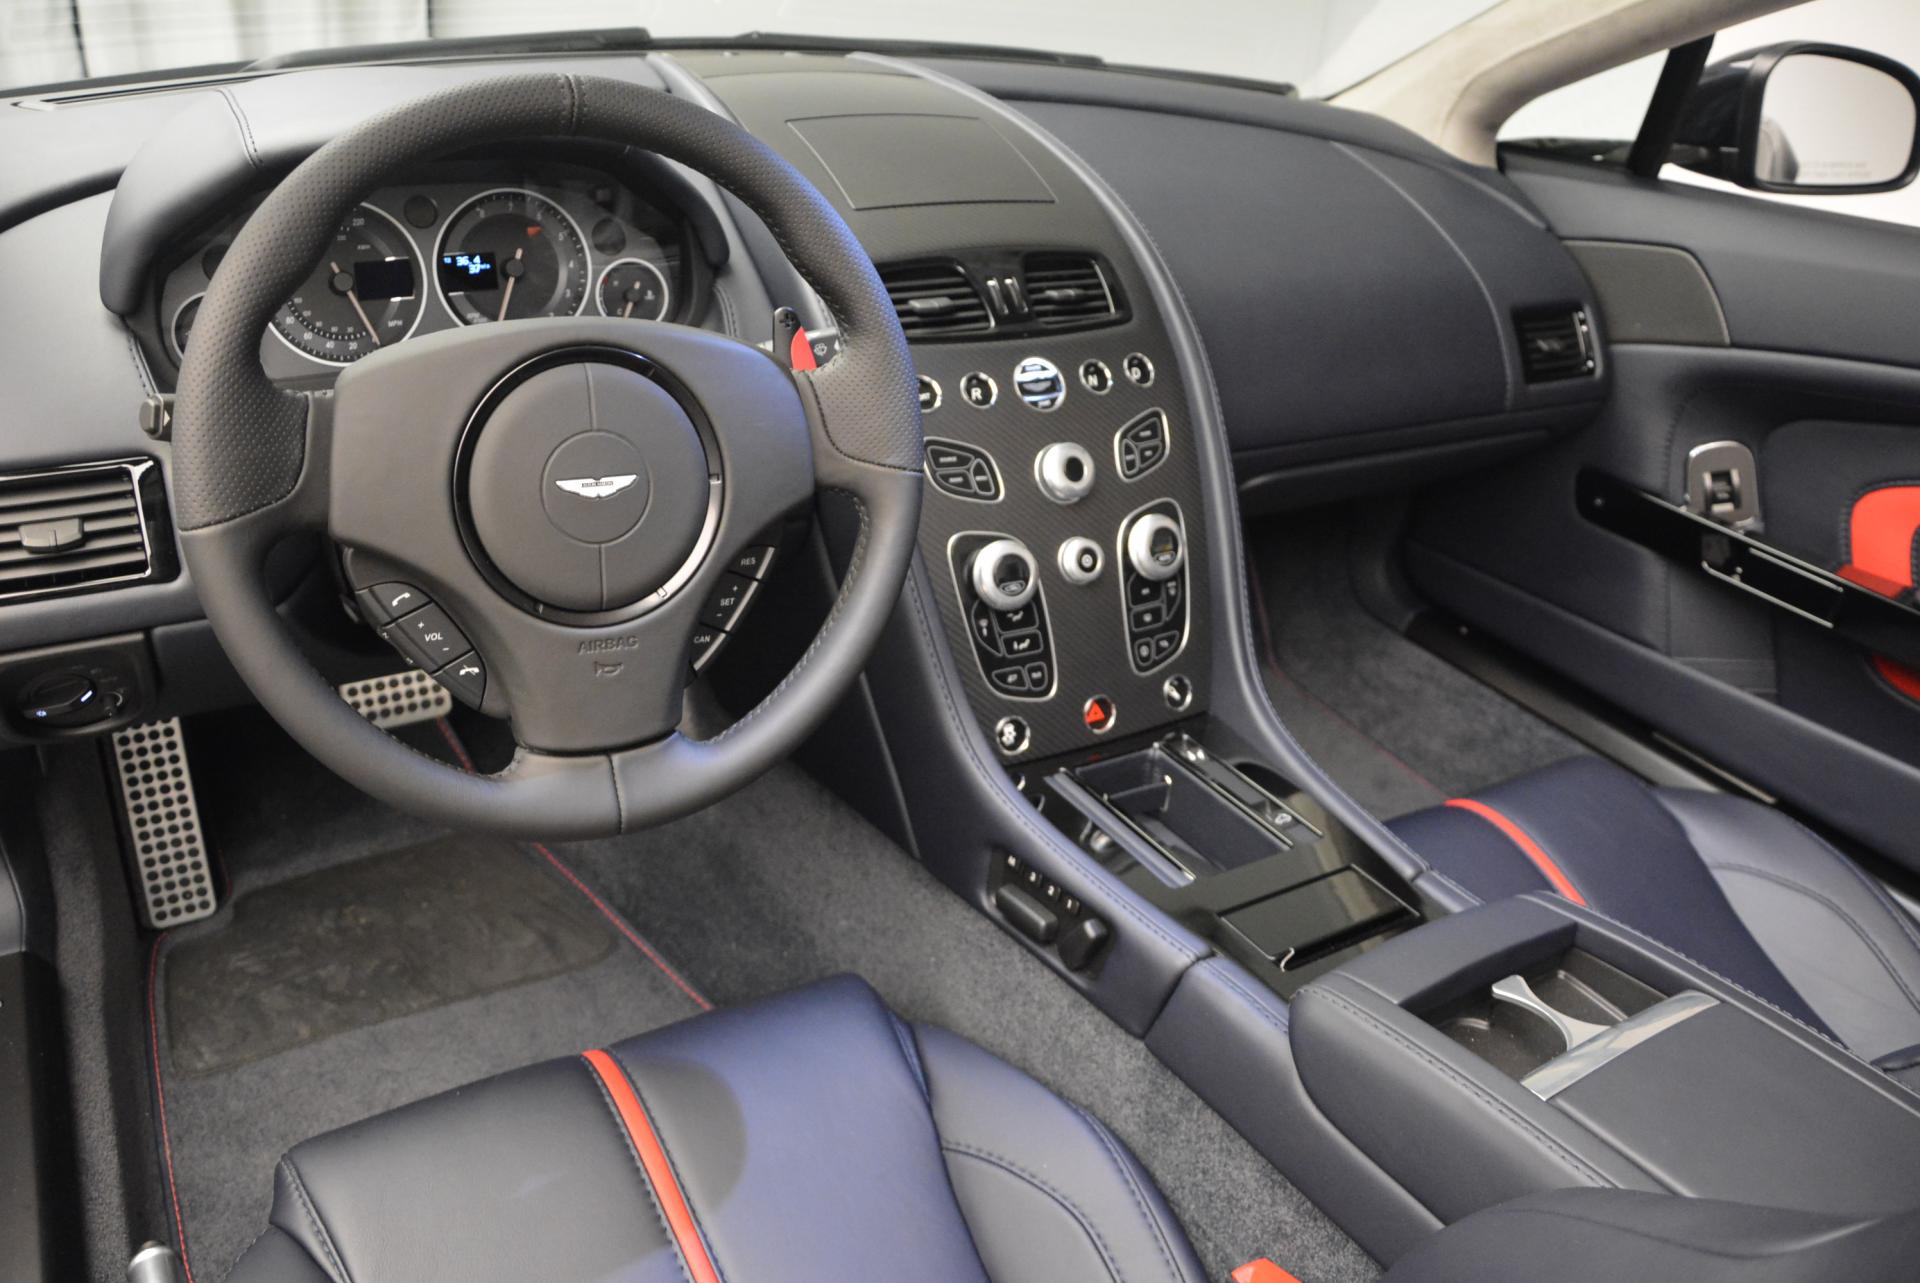 Used 2016 Aston Martin V12 Vantage S Convertible For Sale 128900 In Greenwich, CT